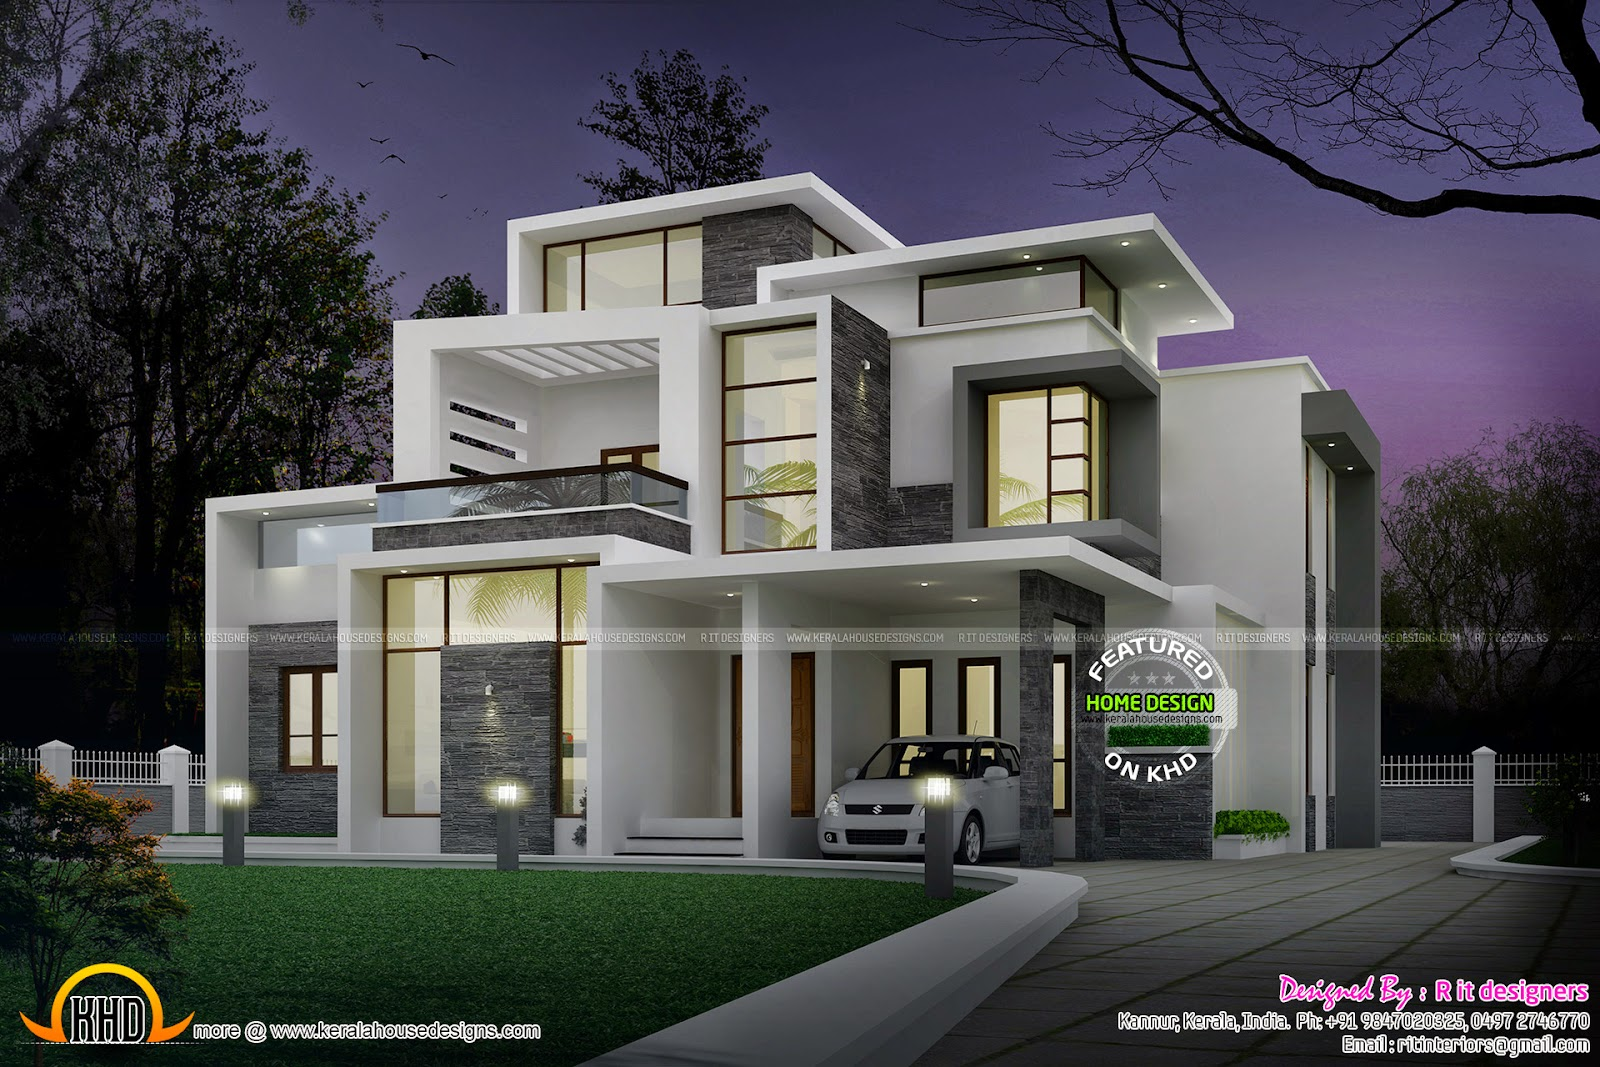 Grand contemporary home design kerala home design and for Modern design home plans